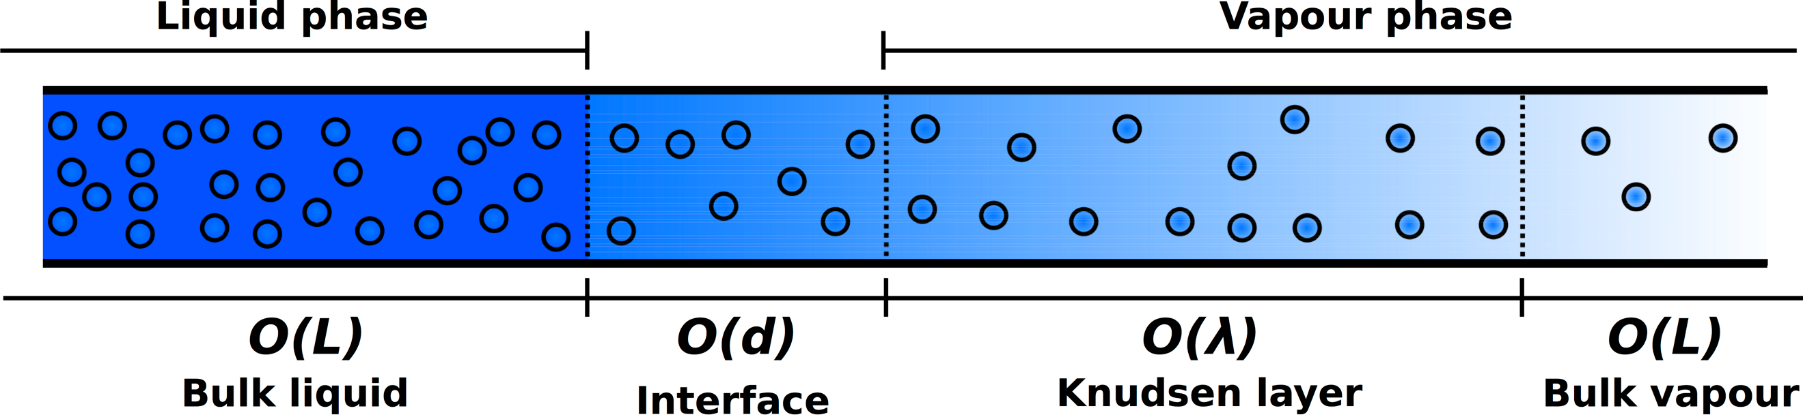 Does Multiscale Mean Coupling?